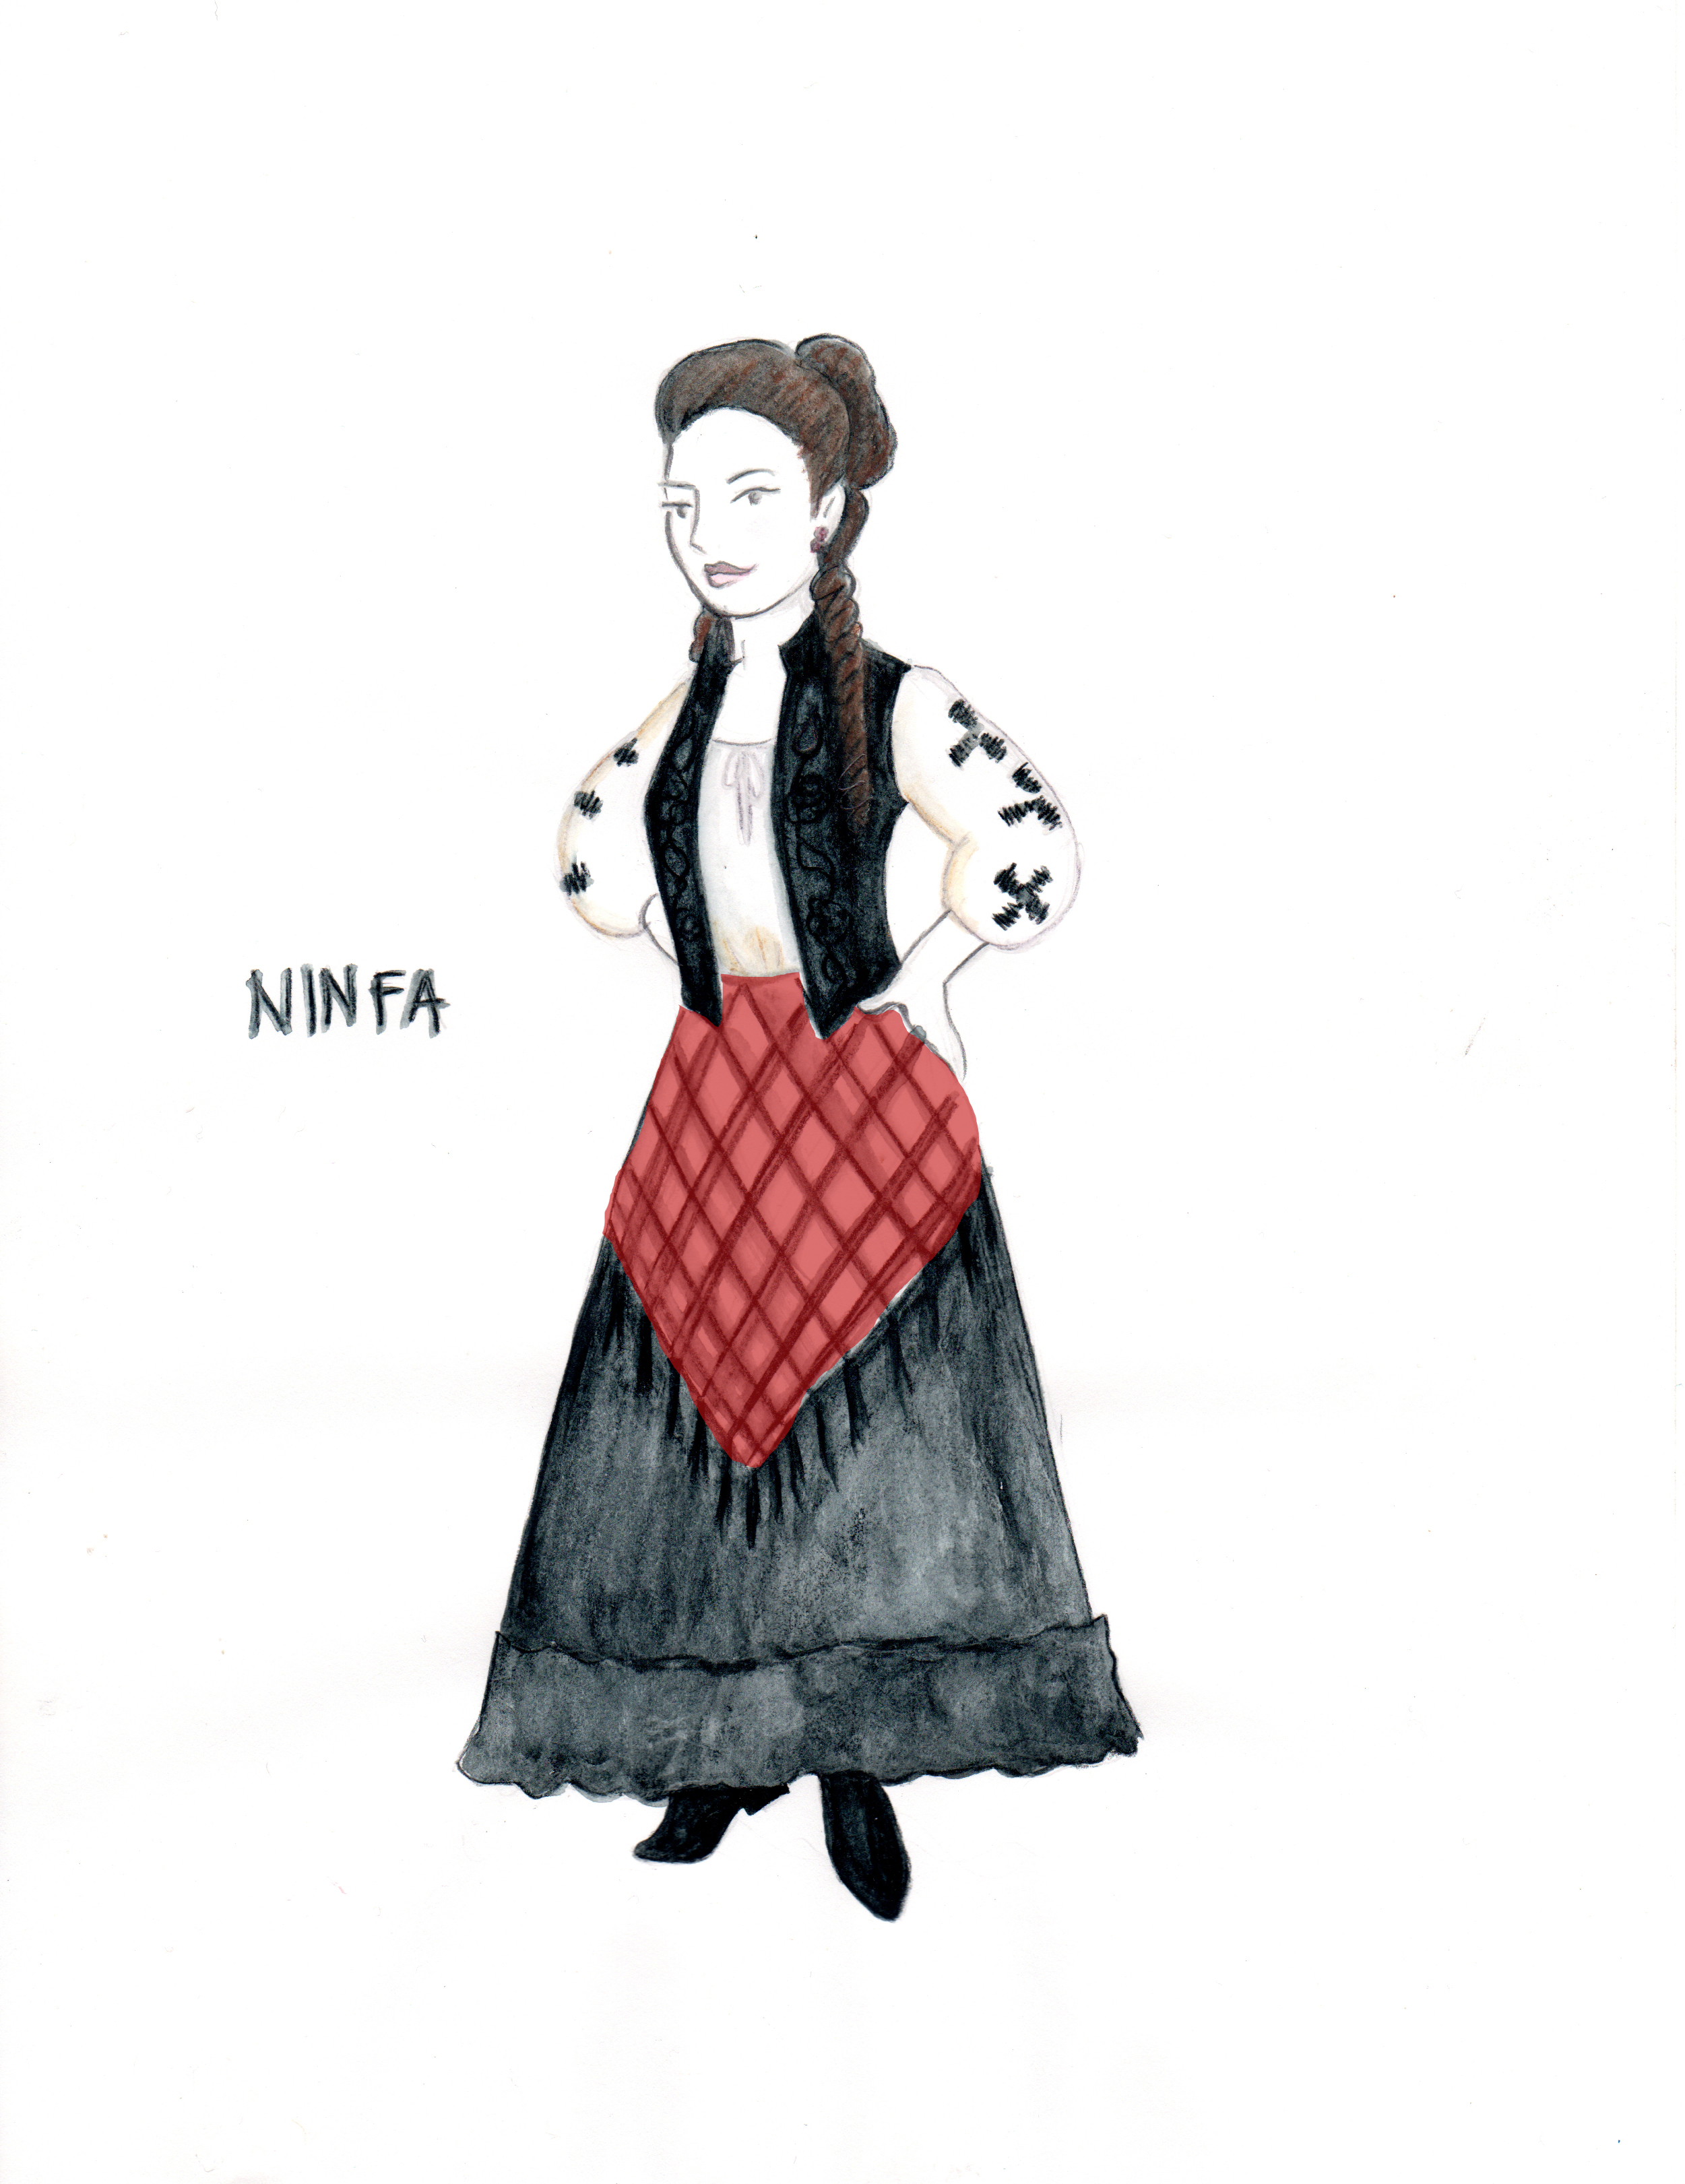 Remme's Run - Ninfa